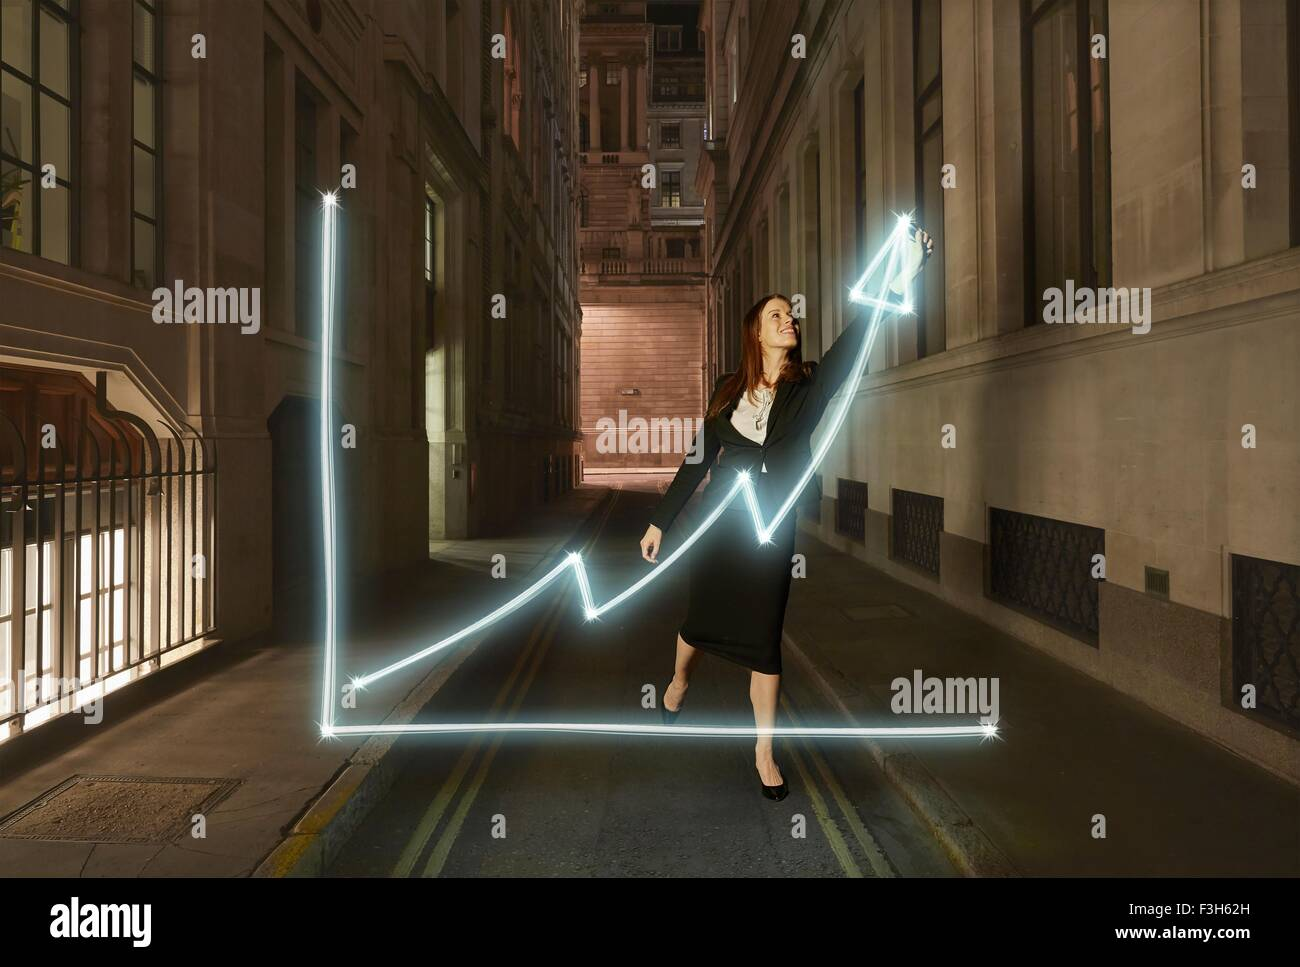 Businesswoman light painting glowing chart with upward arrow symbol  on city street at night - Stock Image